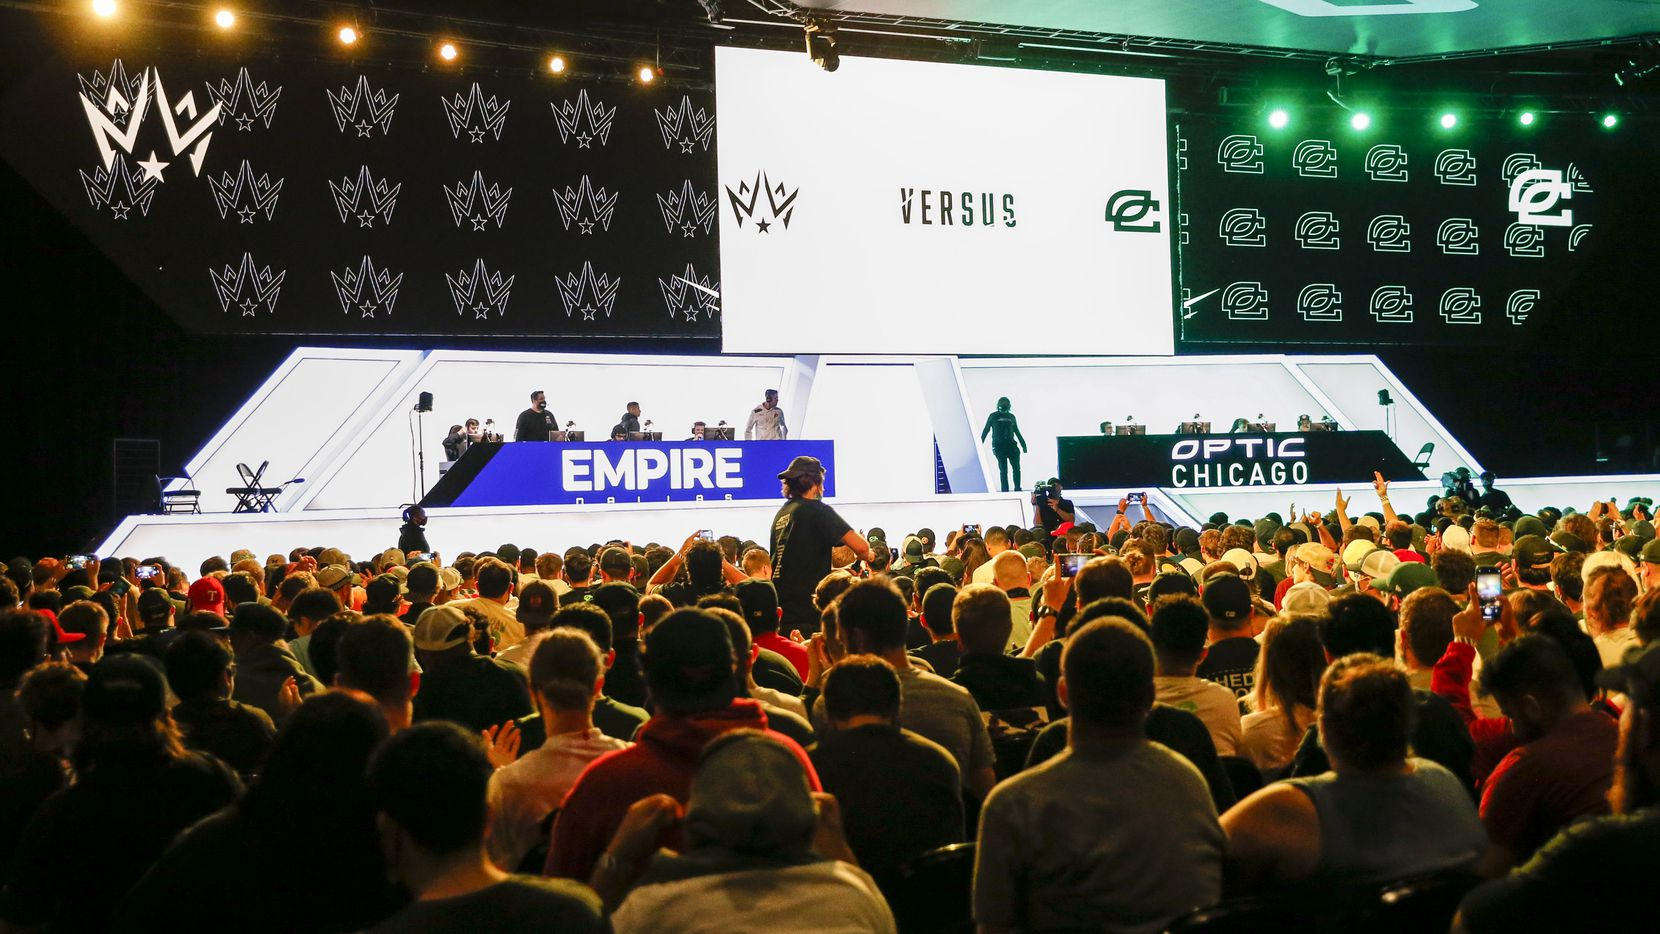 Fans wait for a match between Dallas Empire and Chicago OpTic to start during the Call of Duty League Major V tournament at Esports Stadium Arlington on Sunday, Aug. 1, 2021, in Arlington. (Elias Valverde II/The Dallas Morning News)